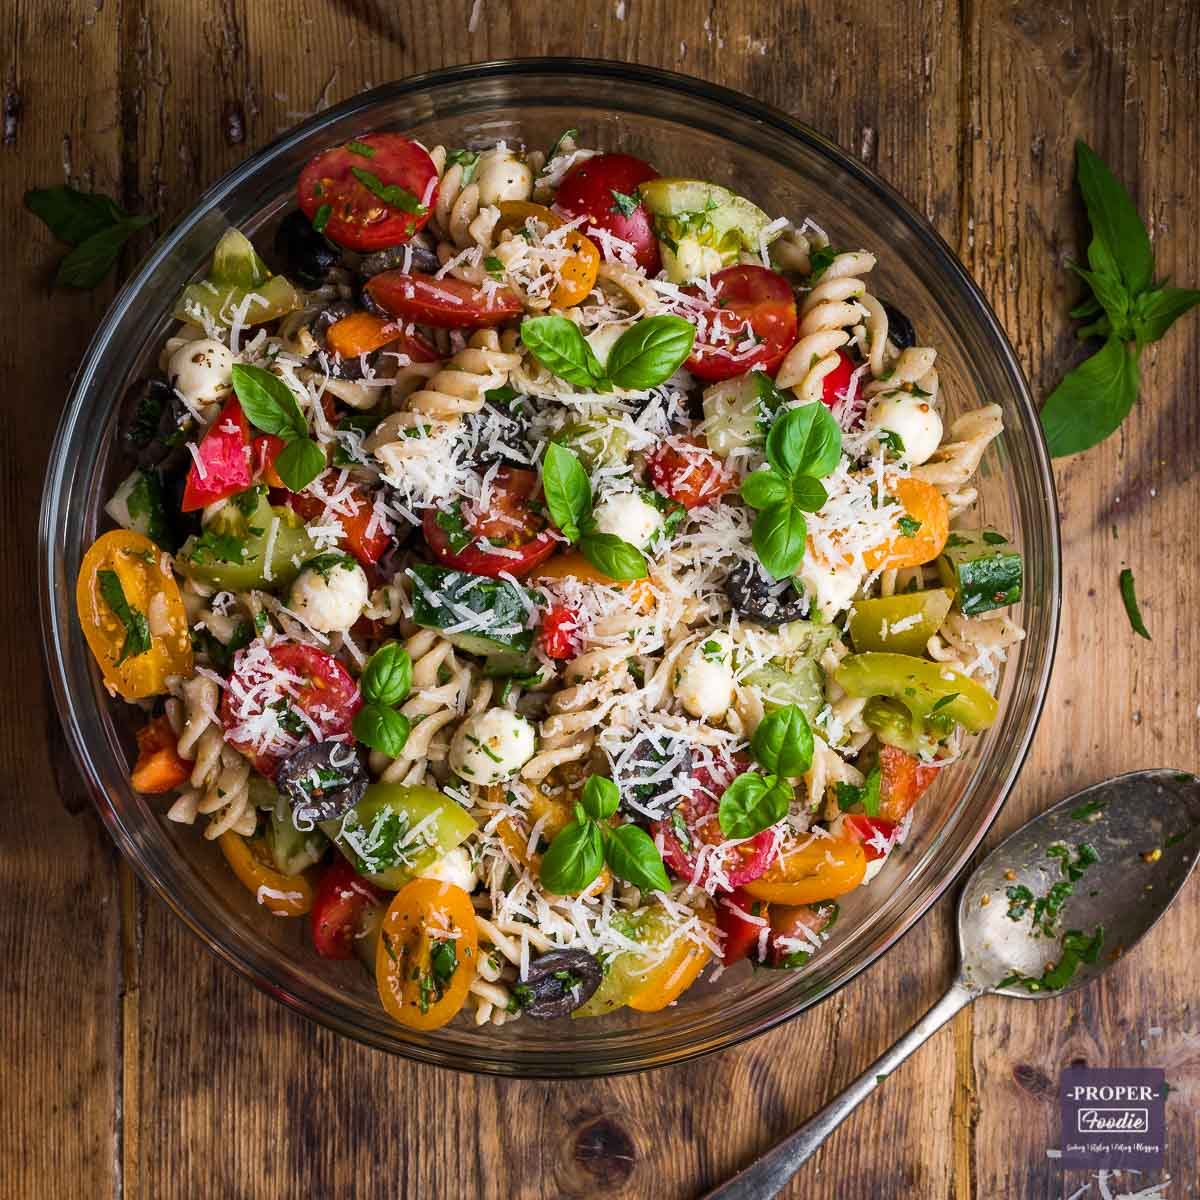 Large bowl filled with cooked fusilli pasta, colourful tomatoes, cucumber, mozzarella pearls and topped with basil leaves and grated pecorino.